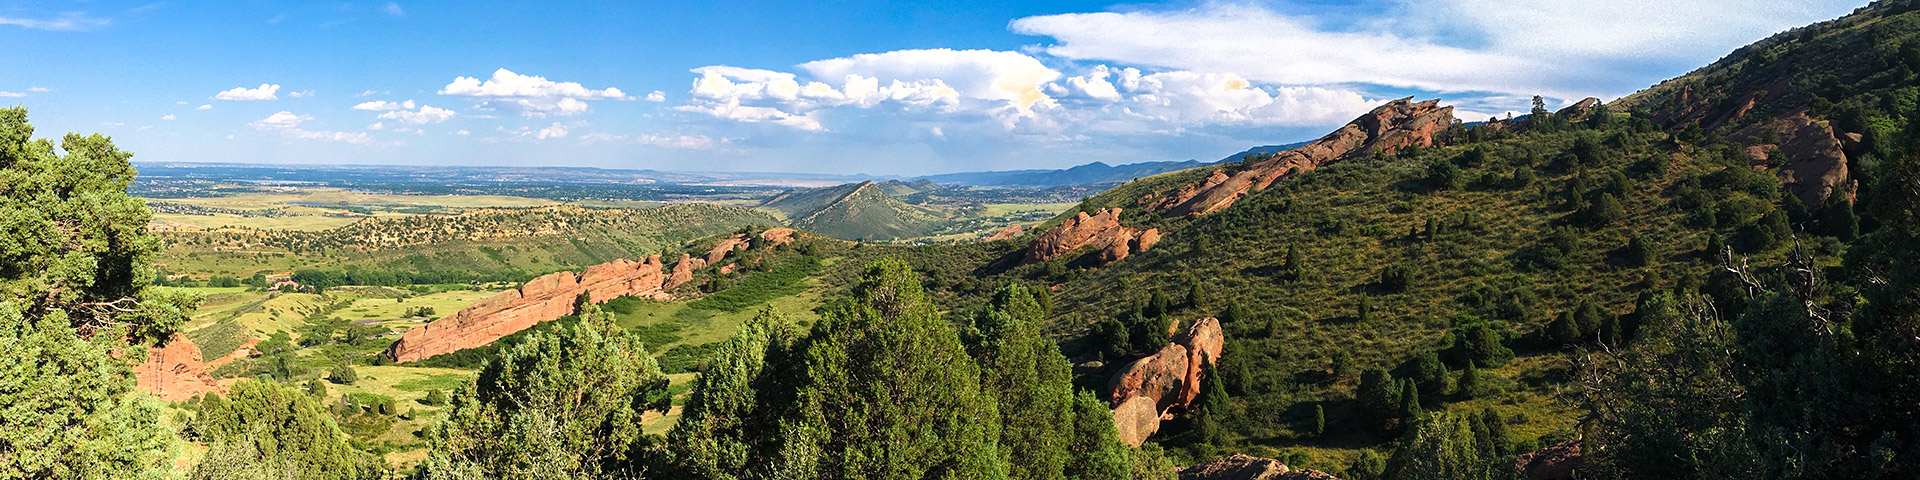 Panorama on the Matthew/Winters Park hike in Denver, Colorado